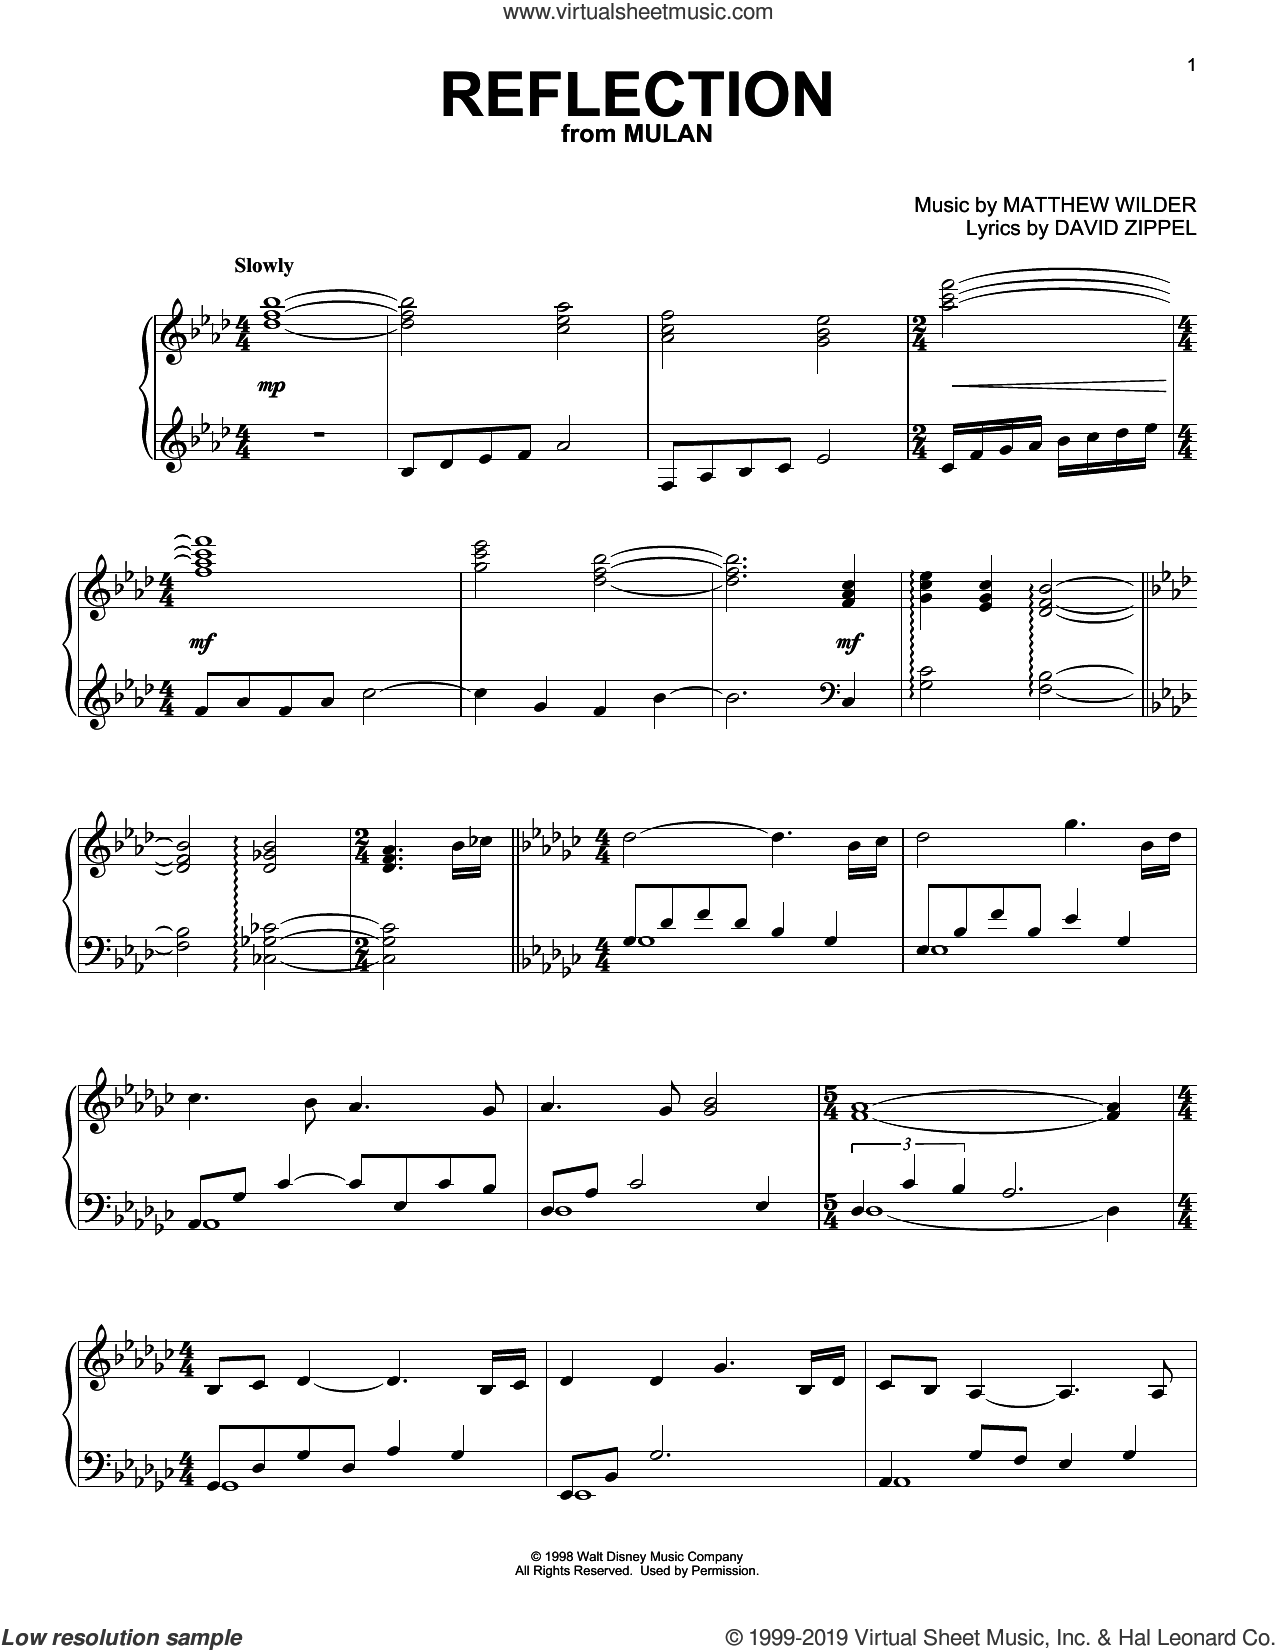 Reflection (from Mulan) sheet music for piano solo by David Zippel and Matthew Wilder, intermediate skill level